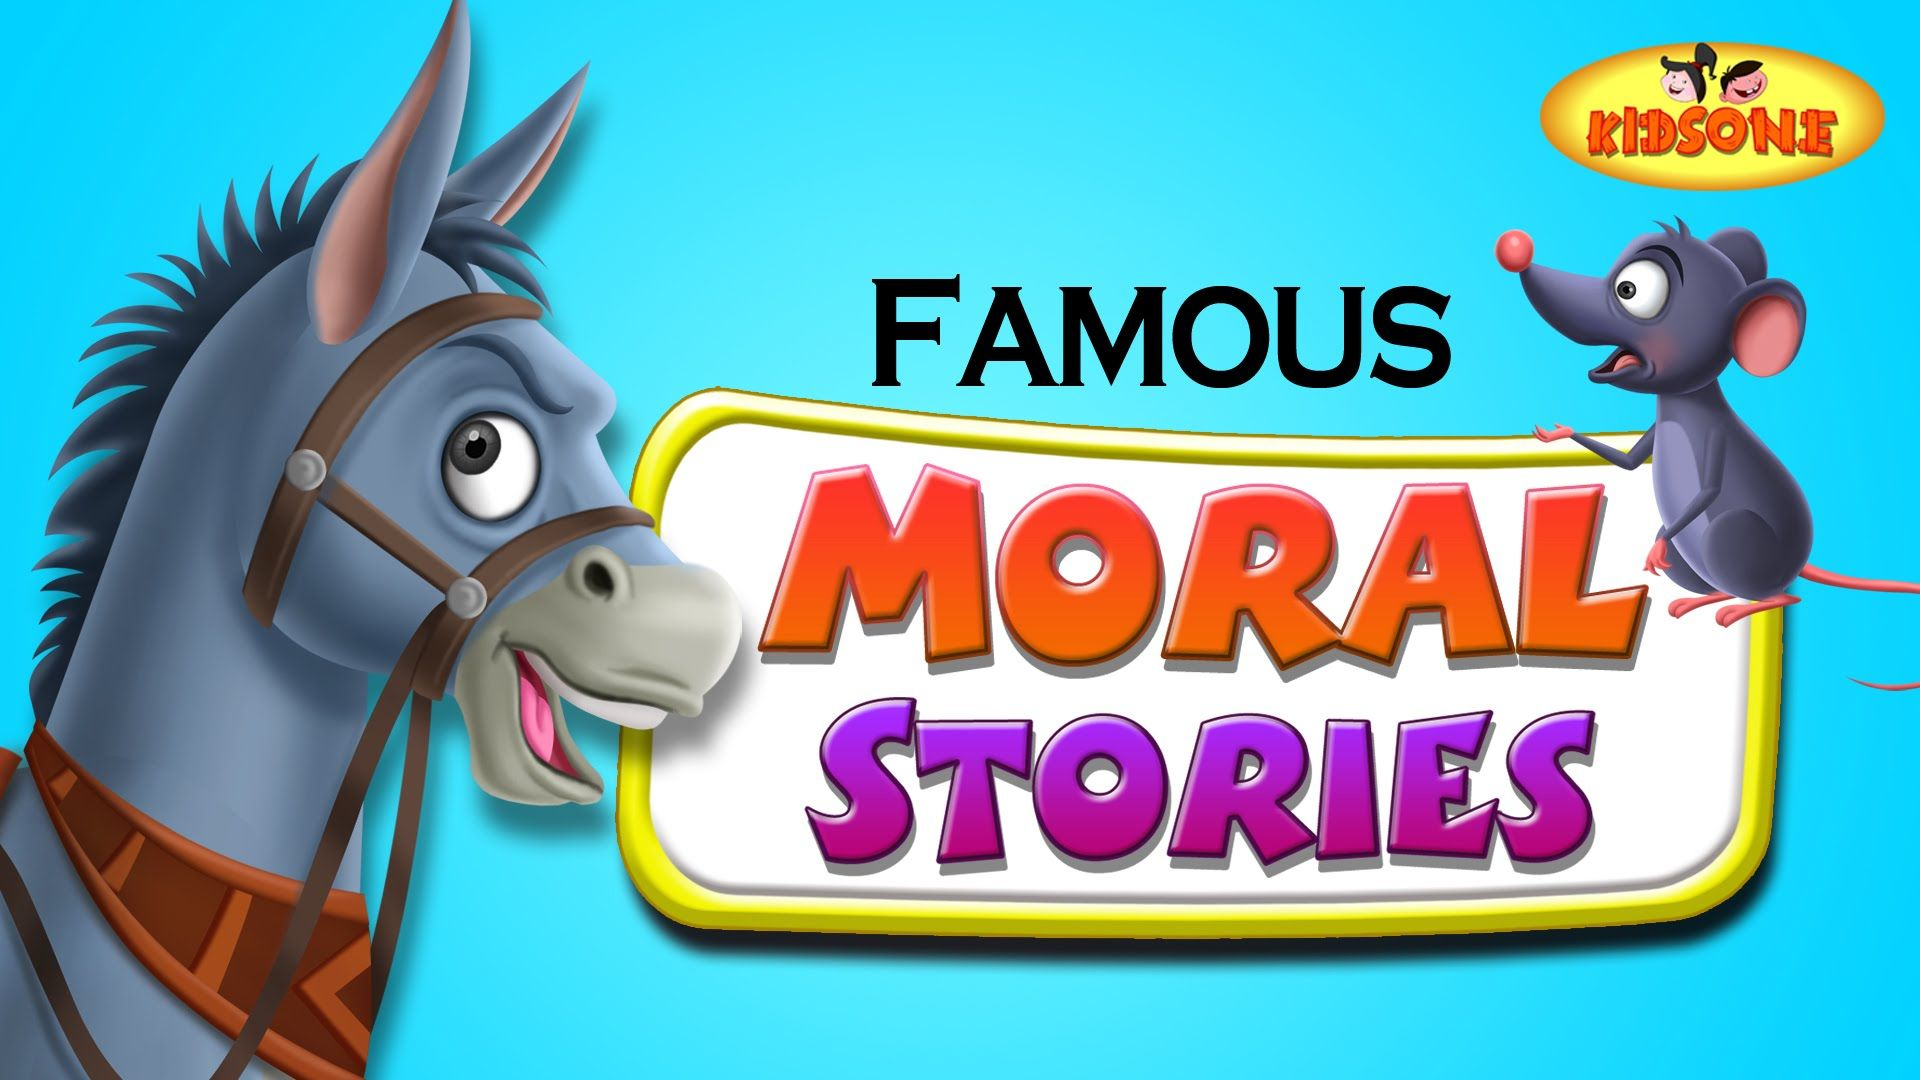 MoralStories, Belling The Cat Story, Cartoon Animated